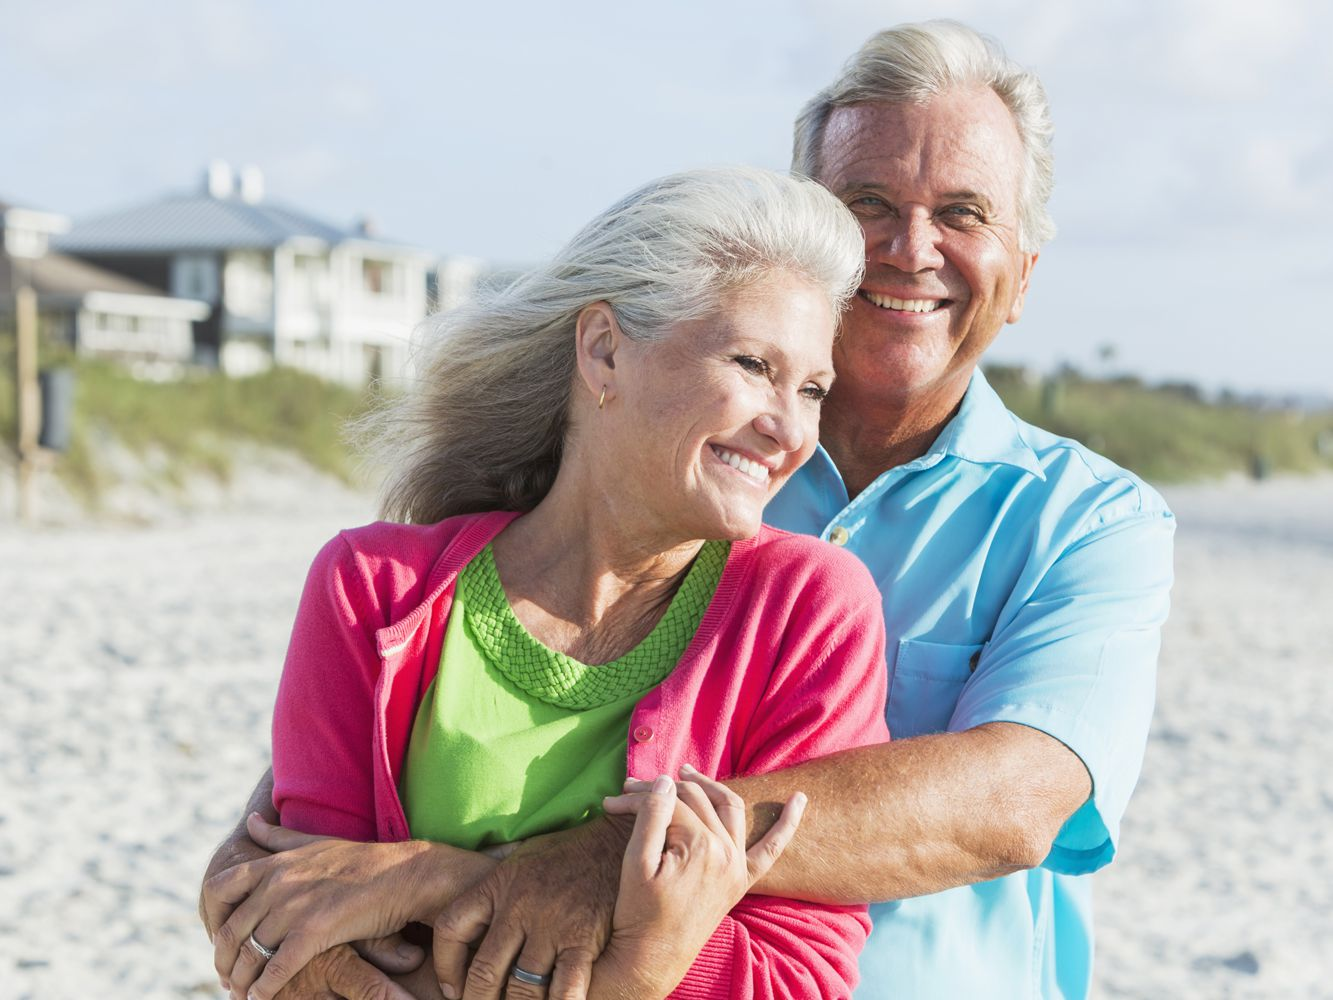 Mature folks making love Sex In Older Adults Statistics Problems And Help